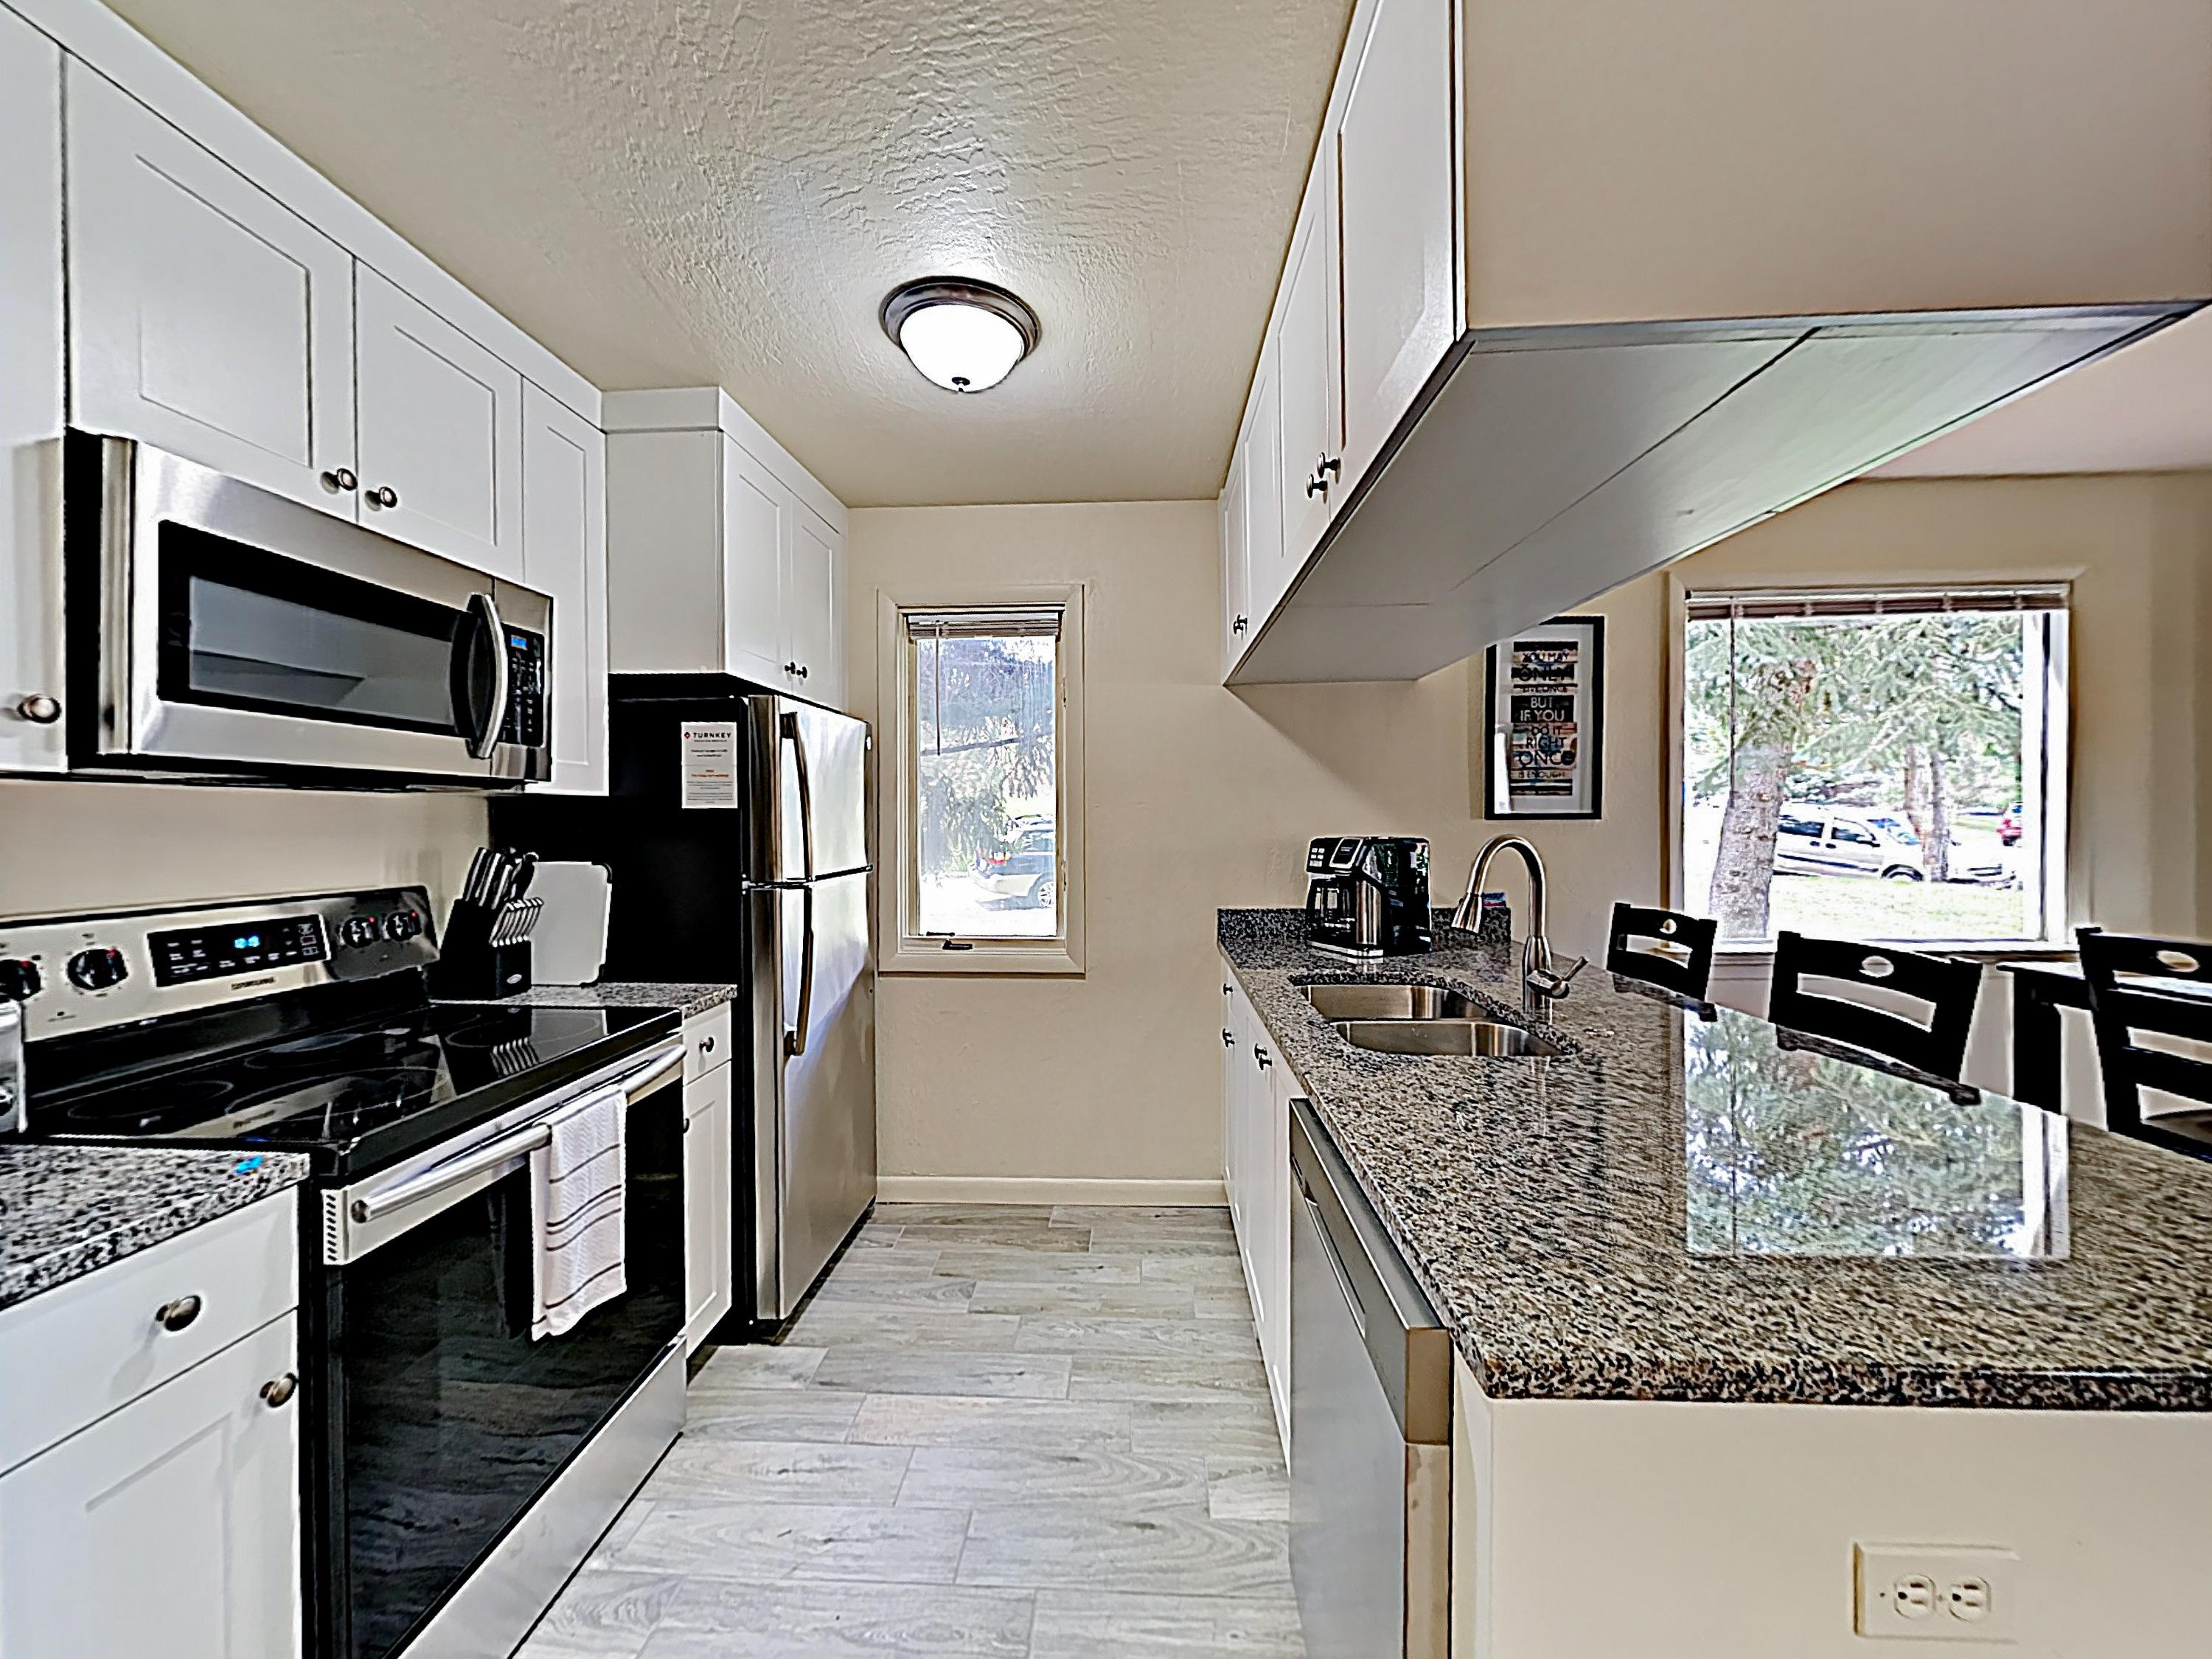 Whip up hearty meals in the kitchen, outfitted with granite countertops, white cabinetry, and stainless steel appliances.